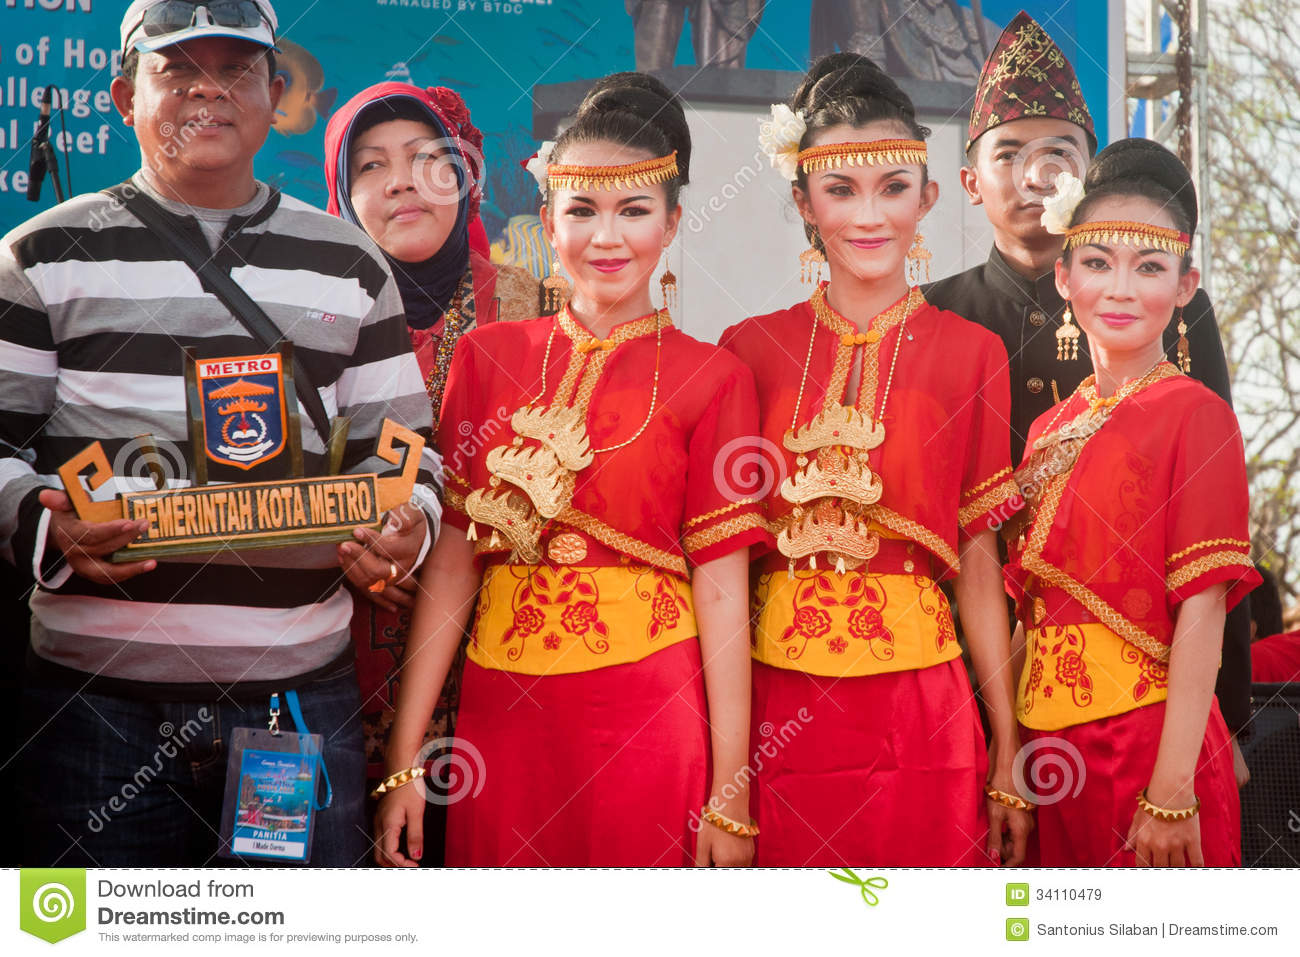 Metro Lampung Dancer Editorial Stock Image Image Of Fight 34110479